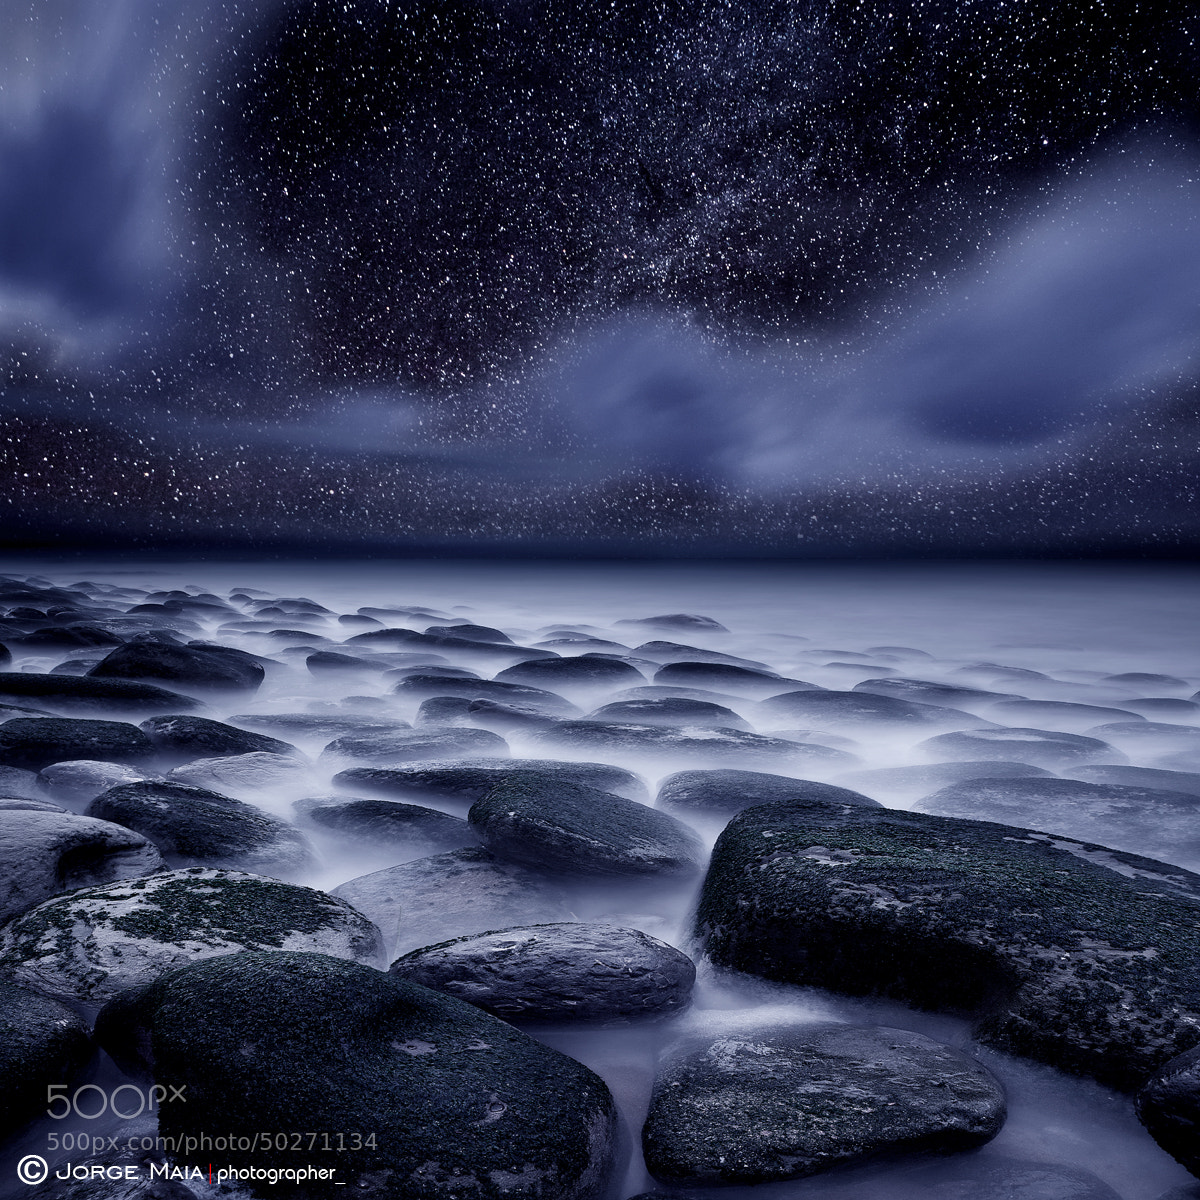 Photograph The Edge of Forever by Jorge Maia on 500px